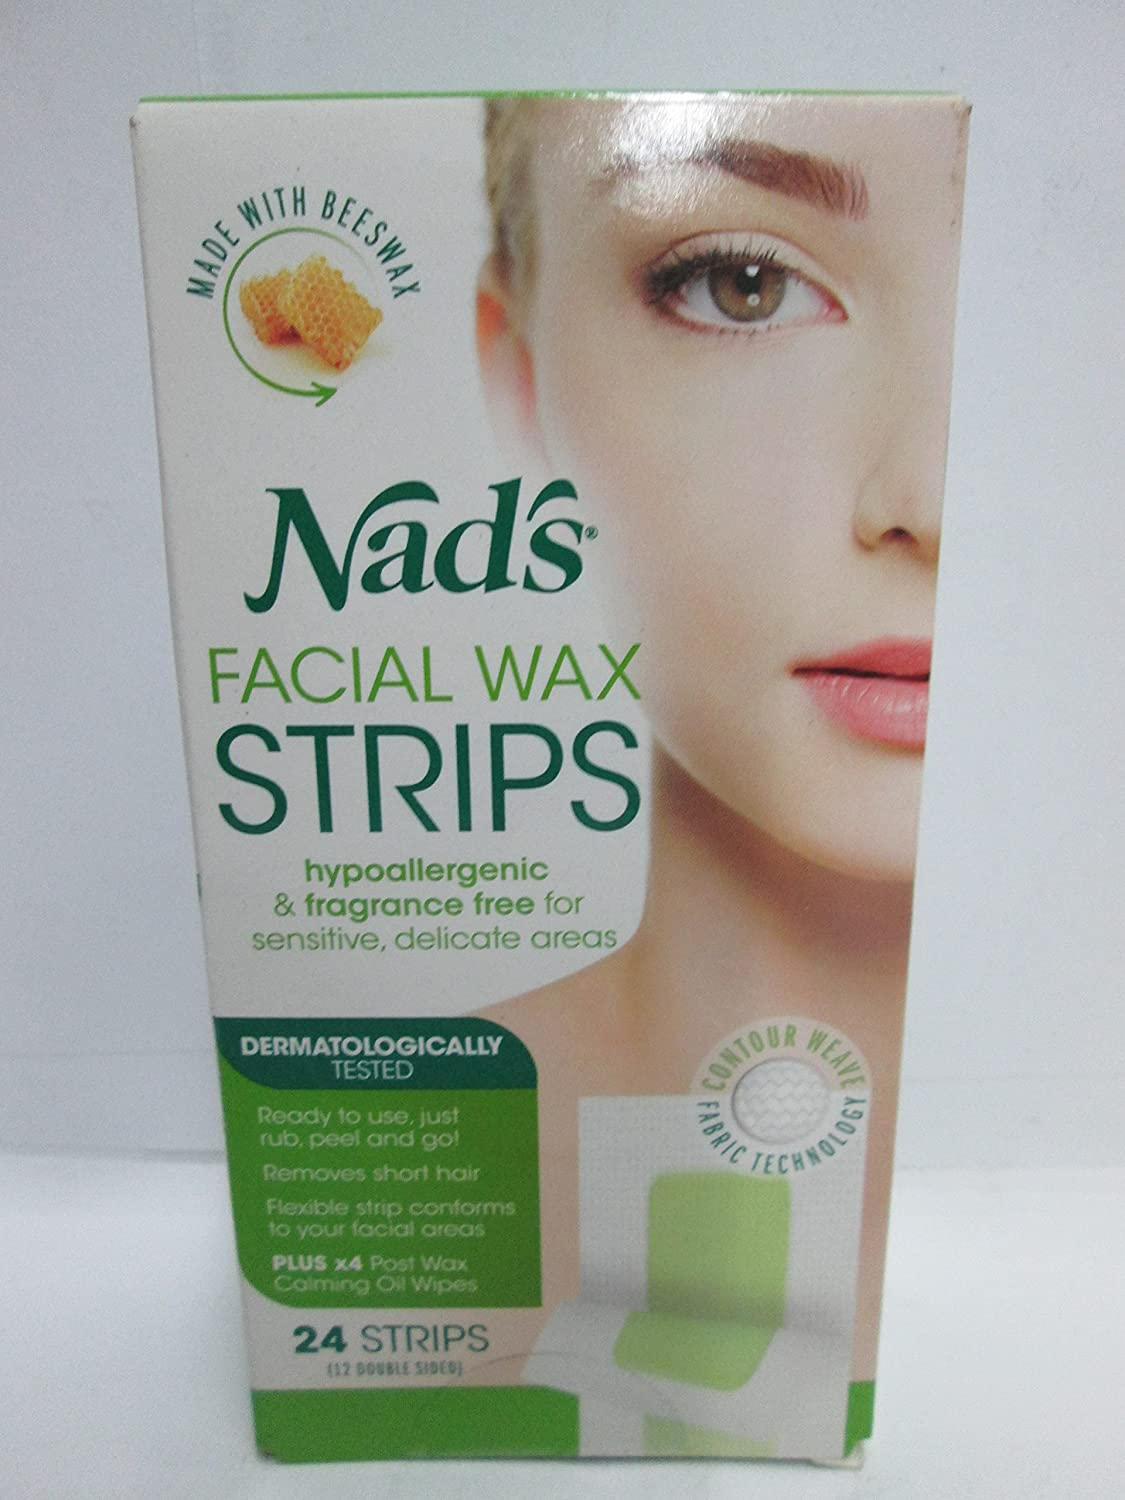 Nads Facial Wax Strips Size 24ct Nads Facial Wax Hair Removal Strips 24ct SI&D (US)Inc